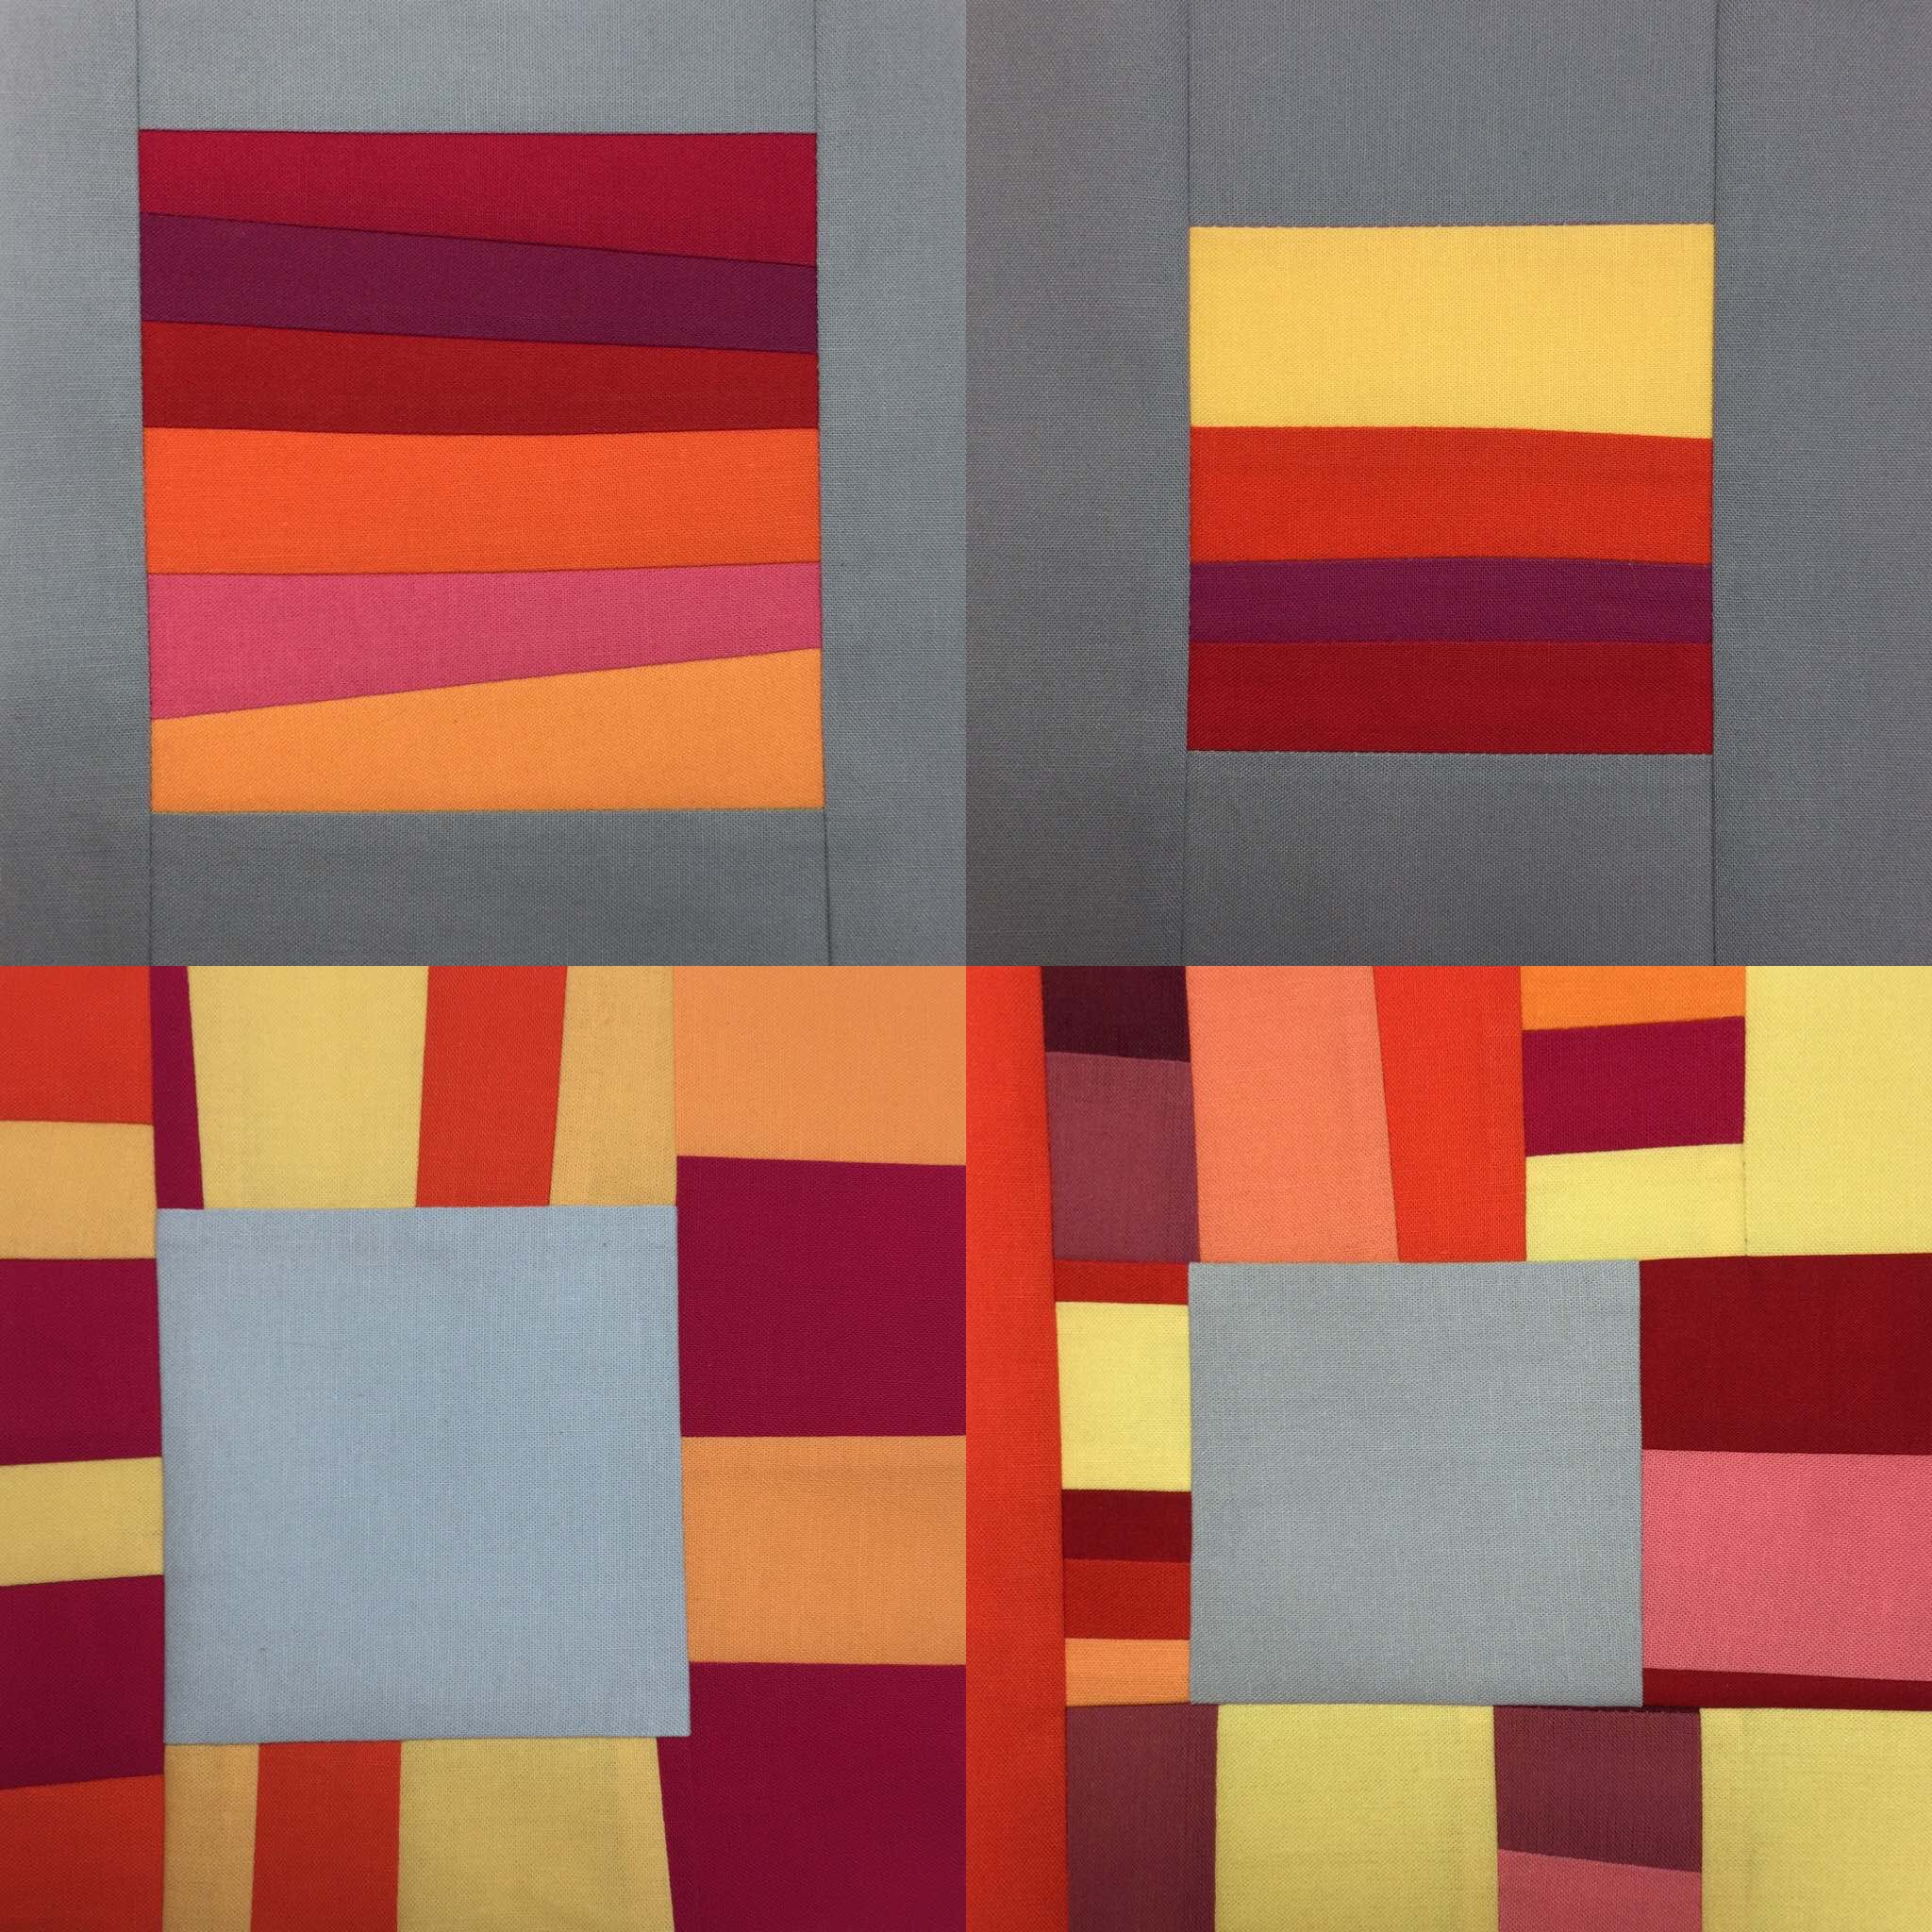 2 Daily Squares of my current Inverse Windows  series shown in upper portion and 2 Daily Squares of the  Windows  series shown below.